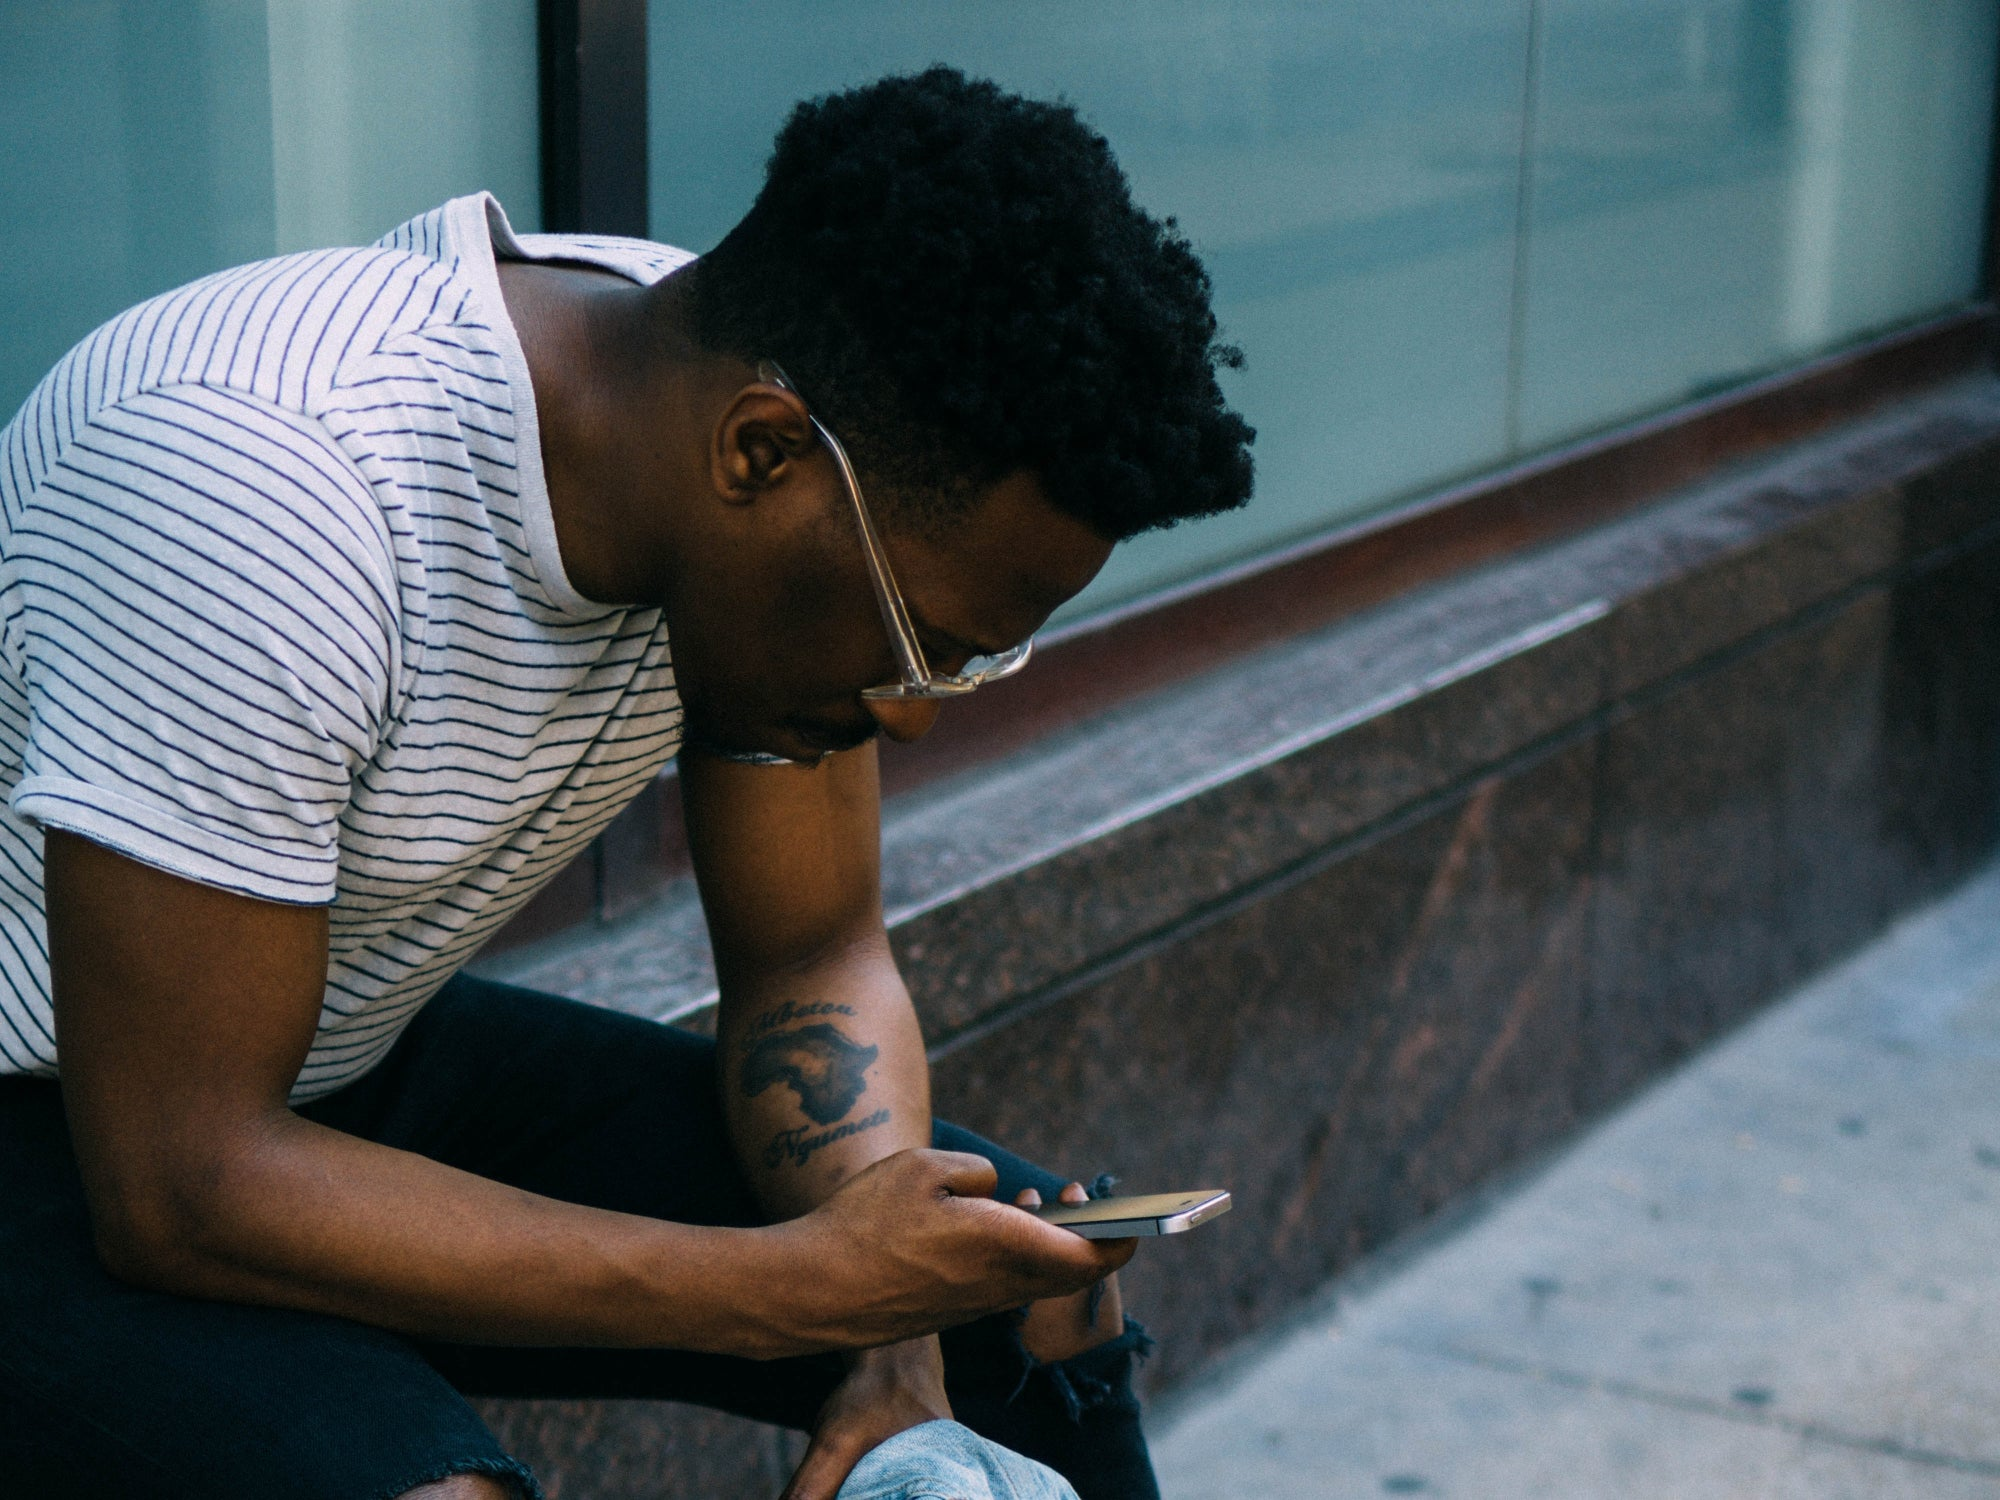 A Black man in glasses and a t-shirt sitting on a marble wall, looking at a phone.